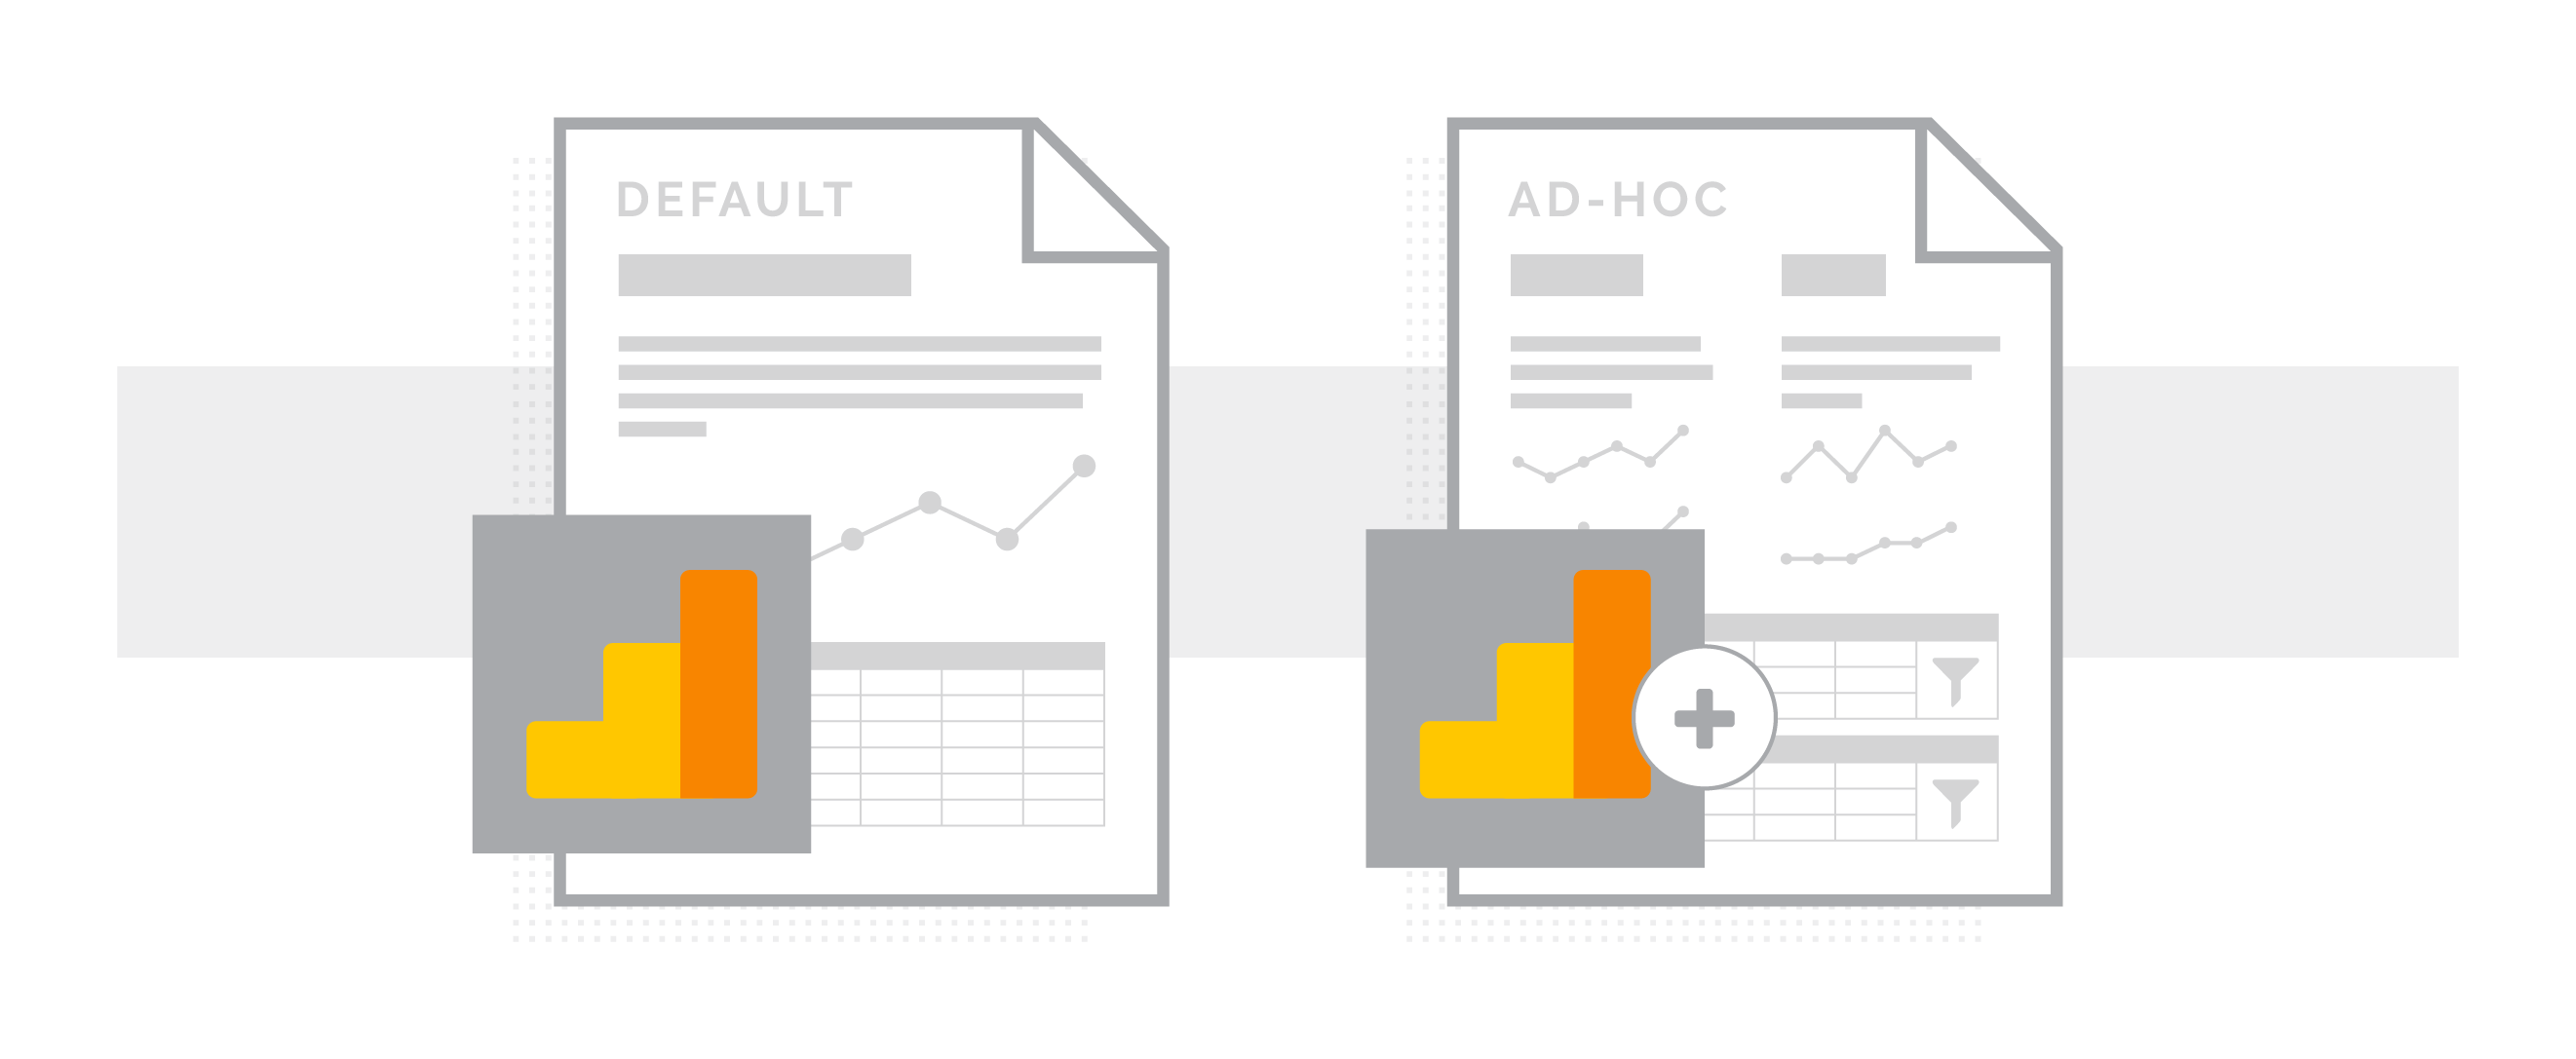 Default Reports vs. Ad-Hoc Reports